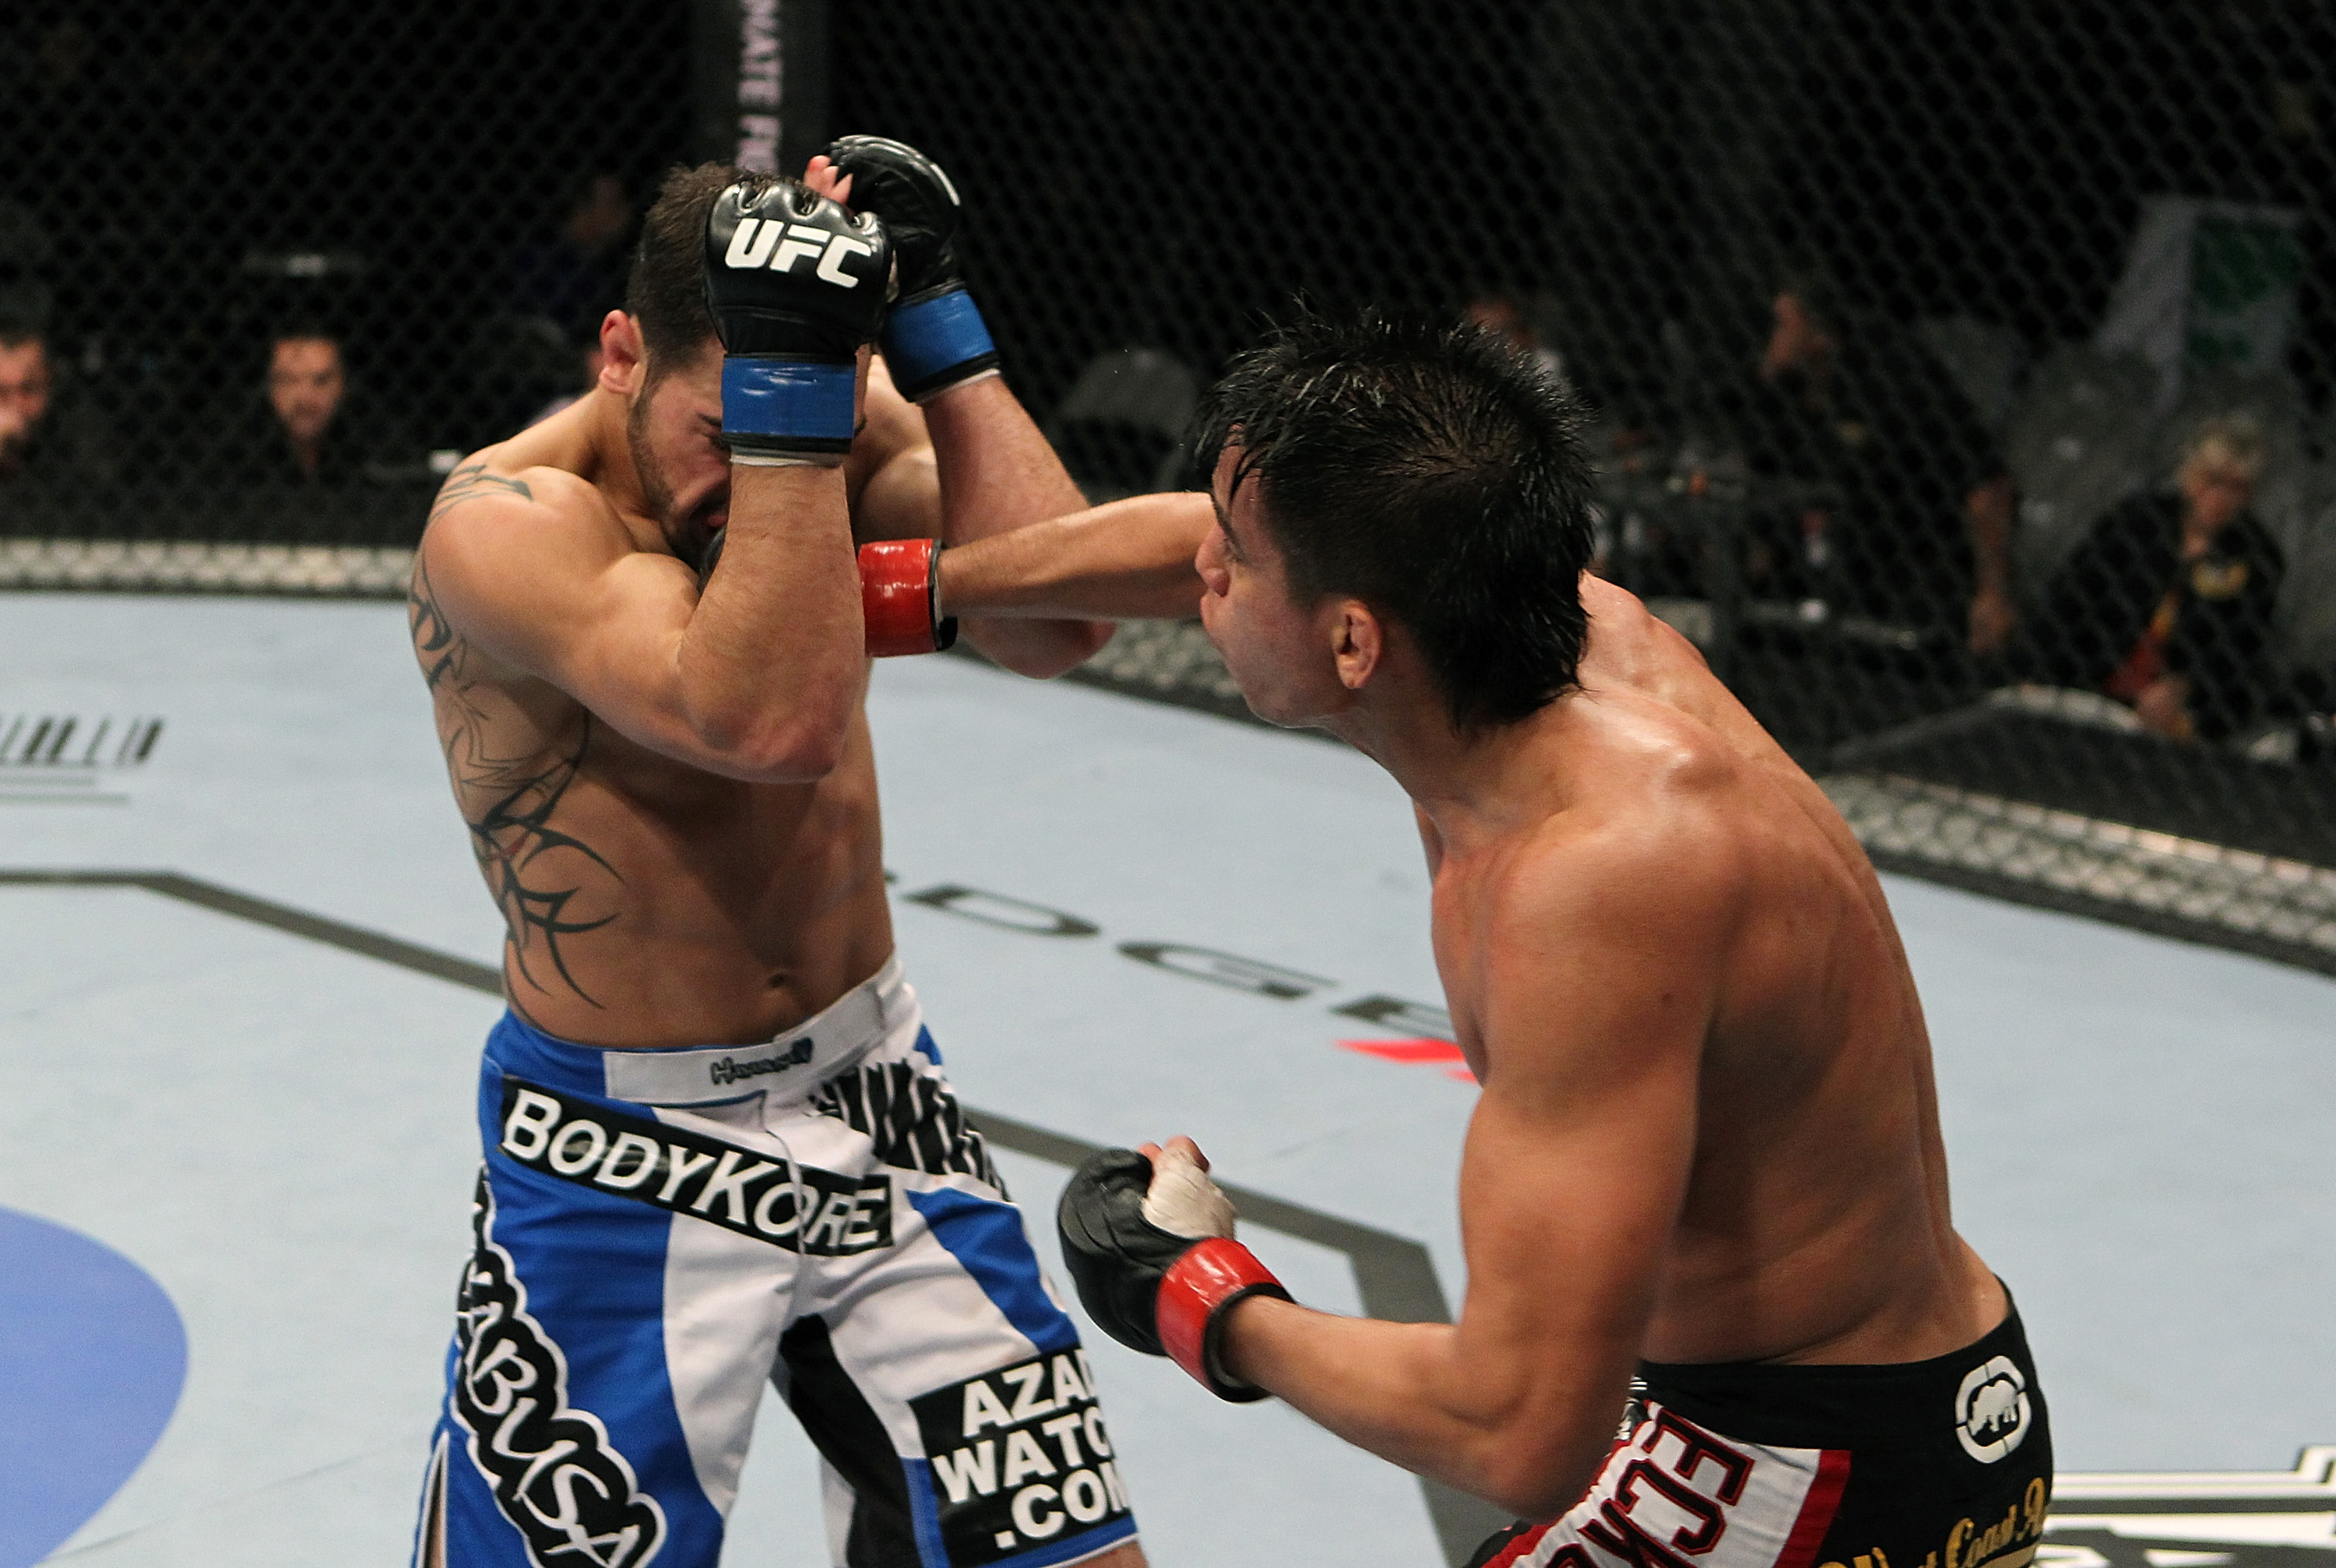 SAN JOSE, CA - NOVEMBER 19: (R-L) Miguel Torres punches Nick Pace during an UFC Bantamweight bout at the HP Pavillion in San Jose, California on November 19, 2011 in San Jose, California.  (Photo by Josh Hedges/Zuffa LLC/Zuffa LLC via Getty Images)